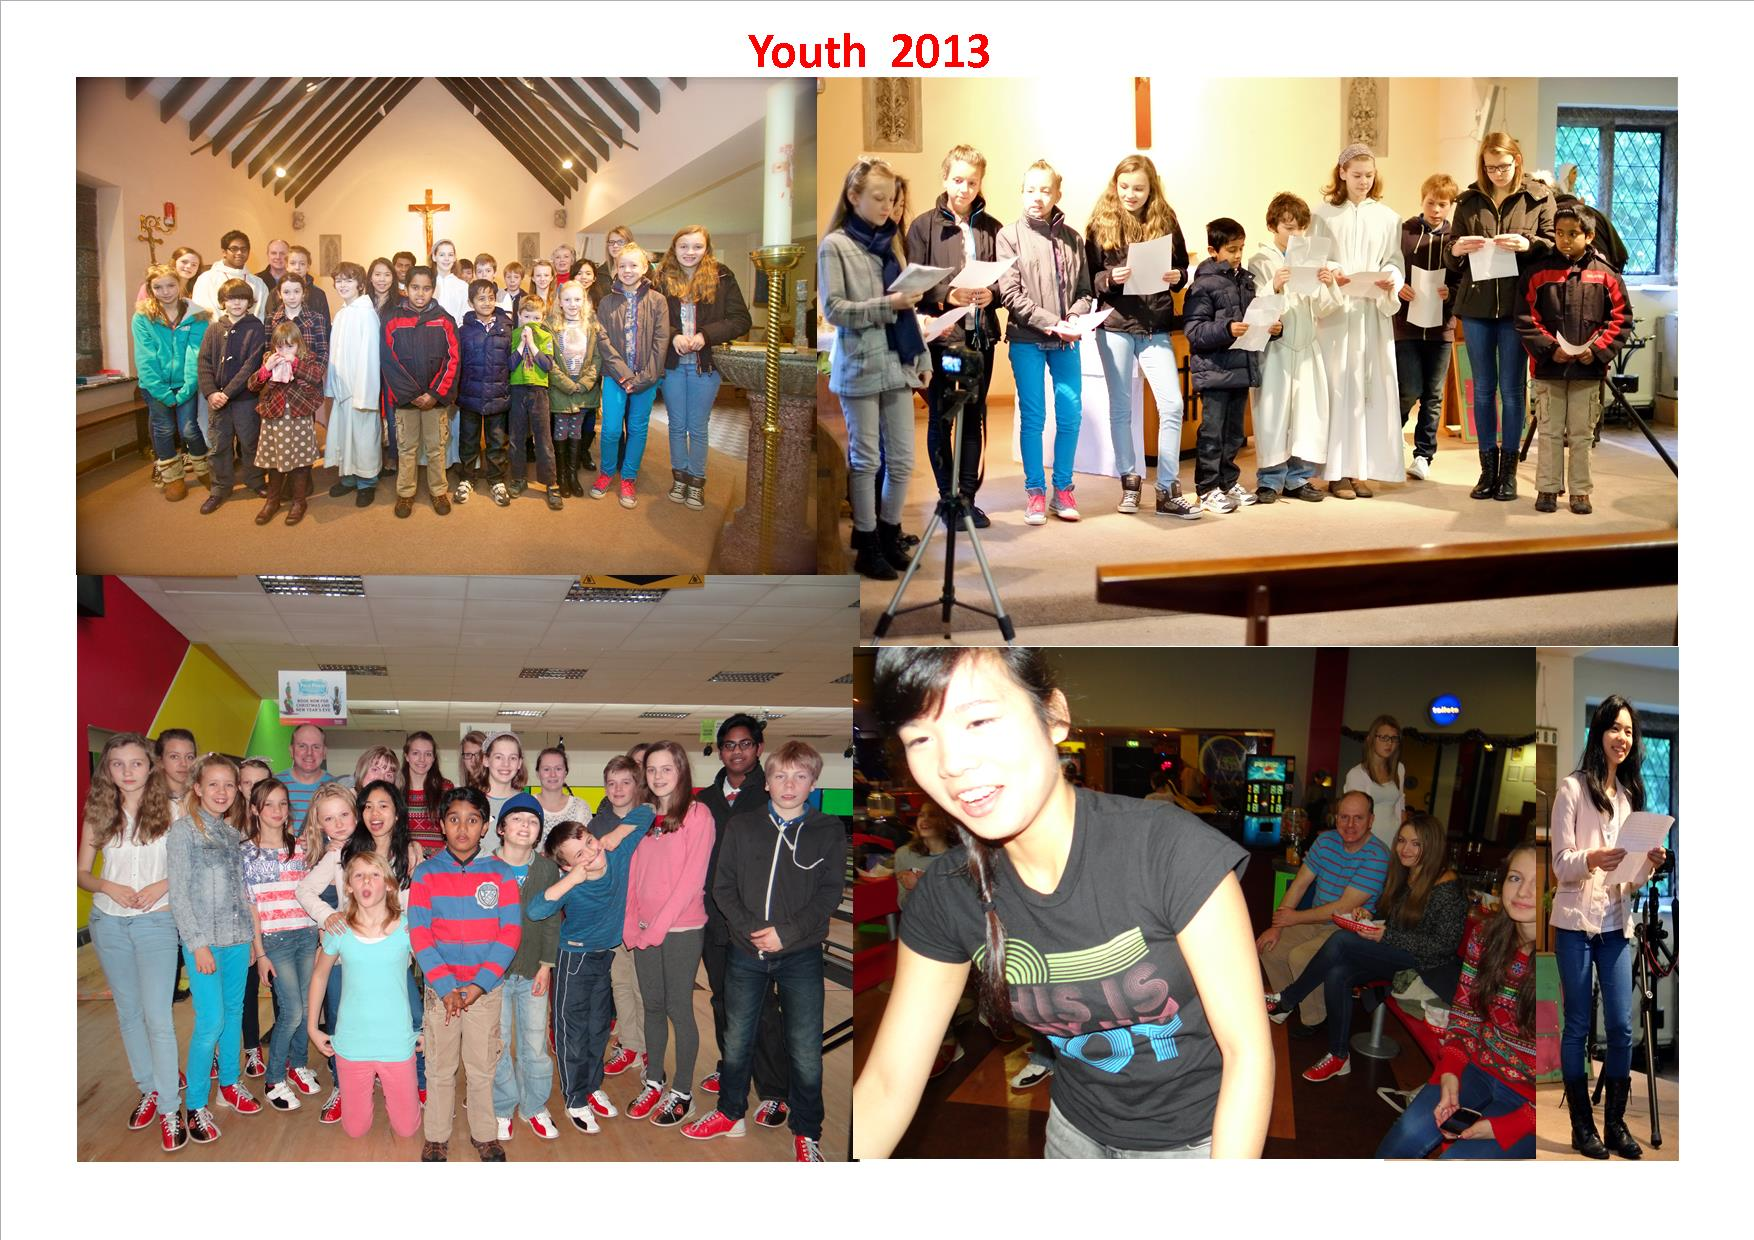 youth-2013-01